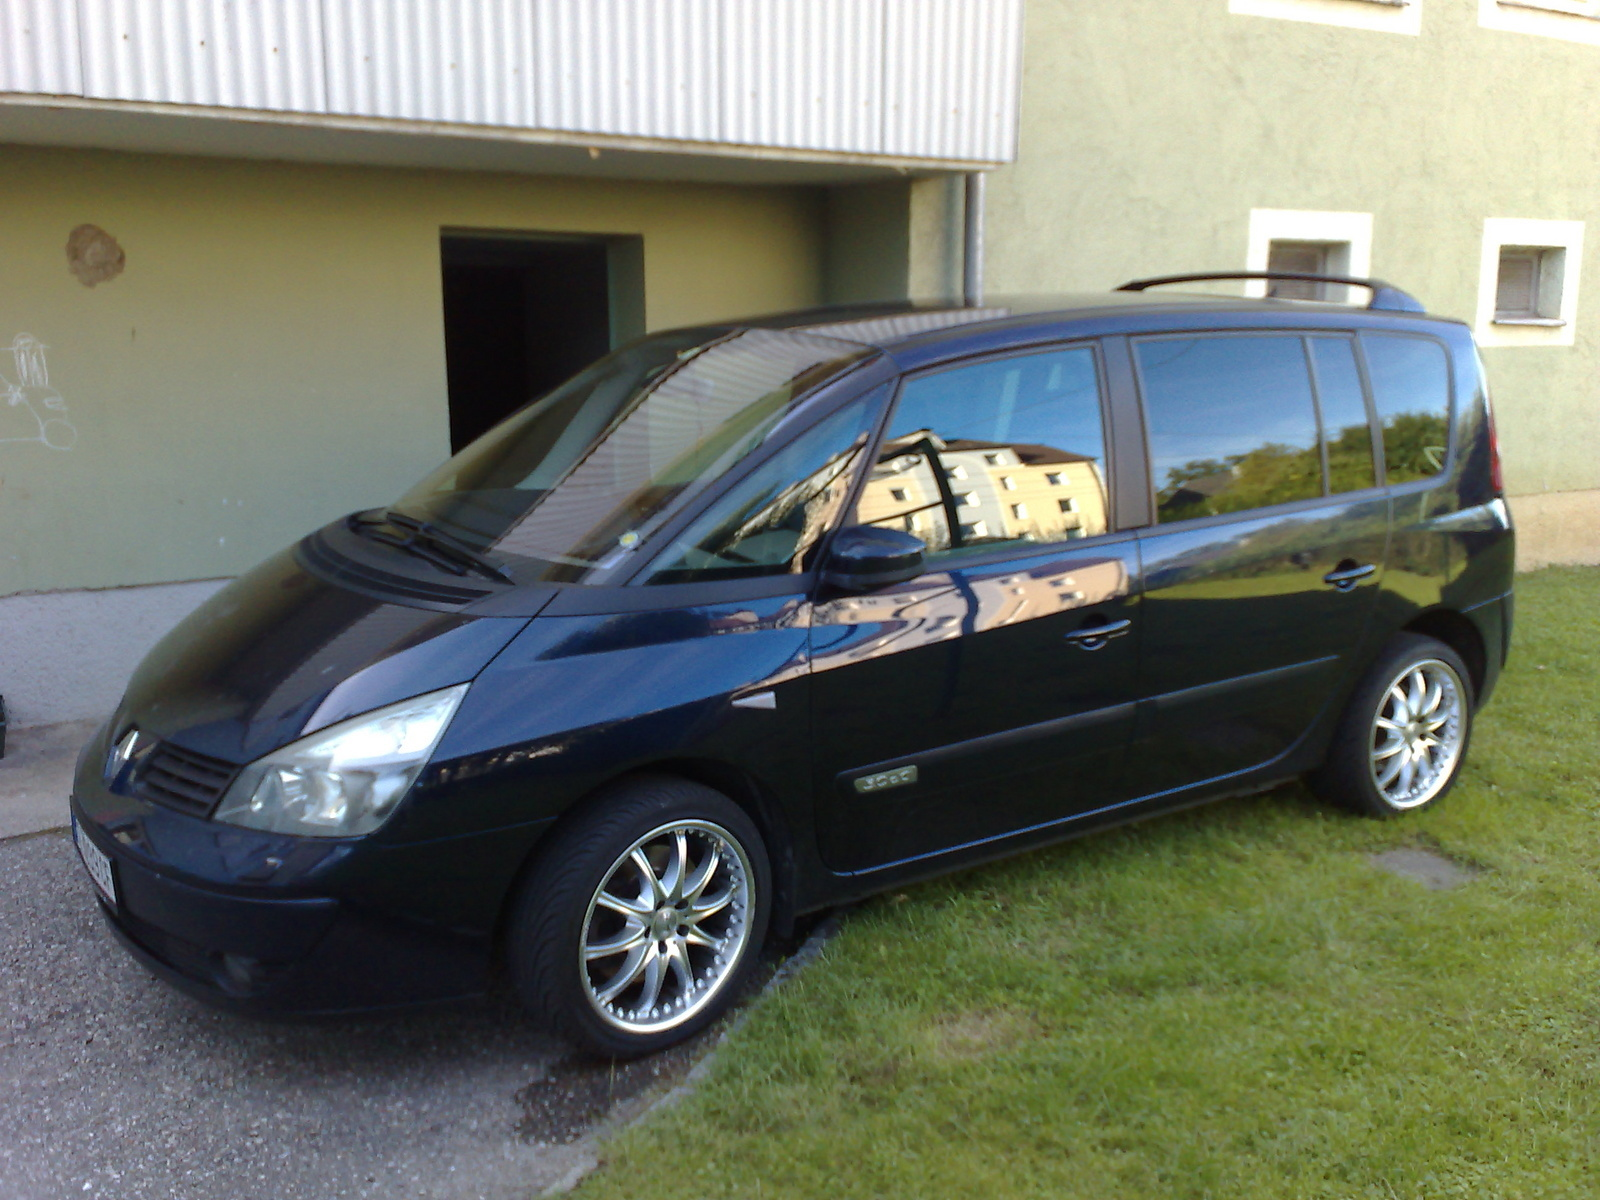 2005 Renault Espace Overview C11357 on new de tomaso car